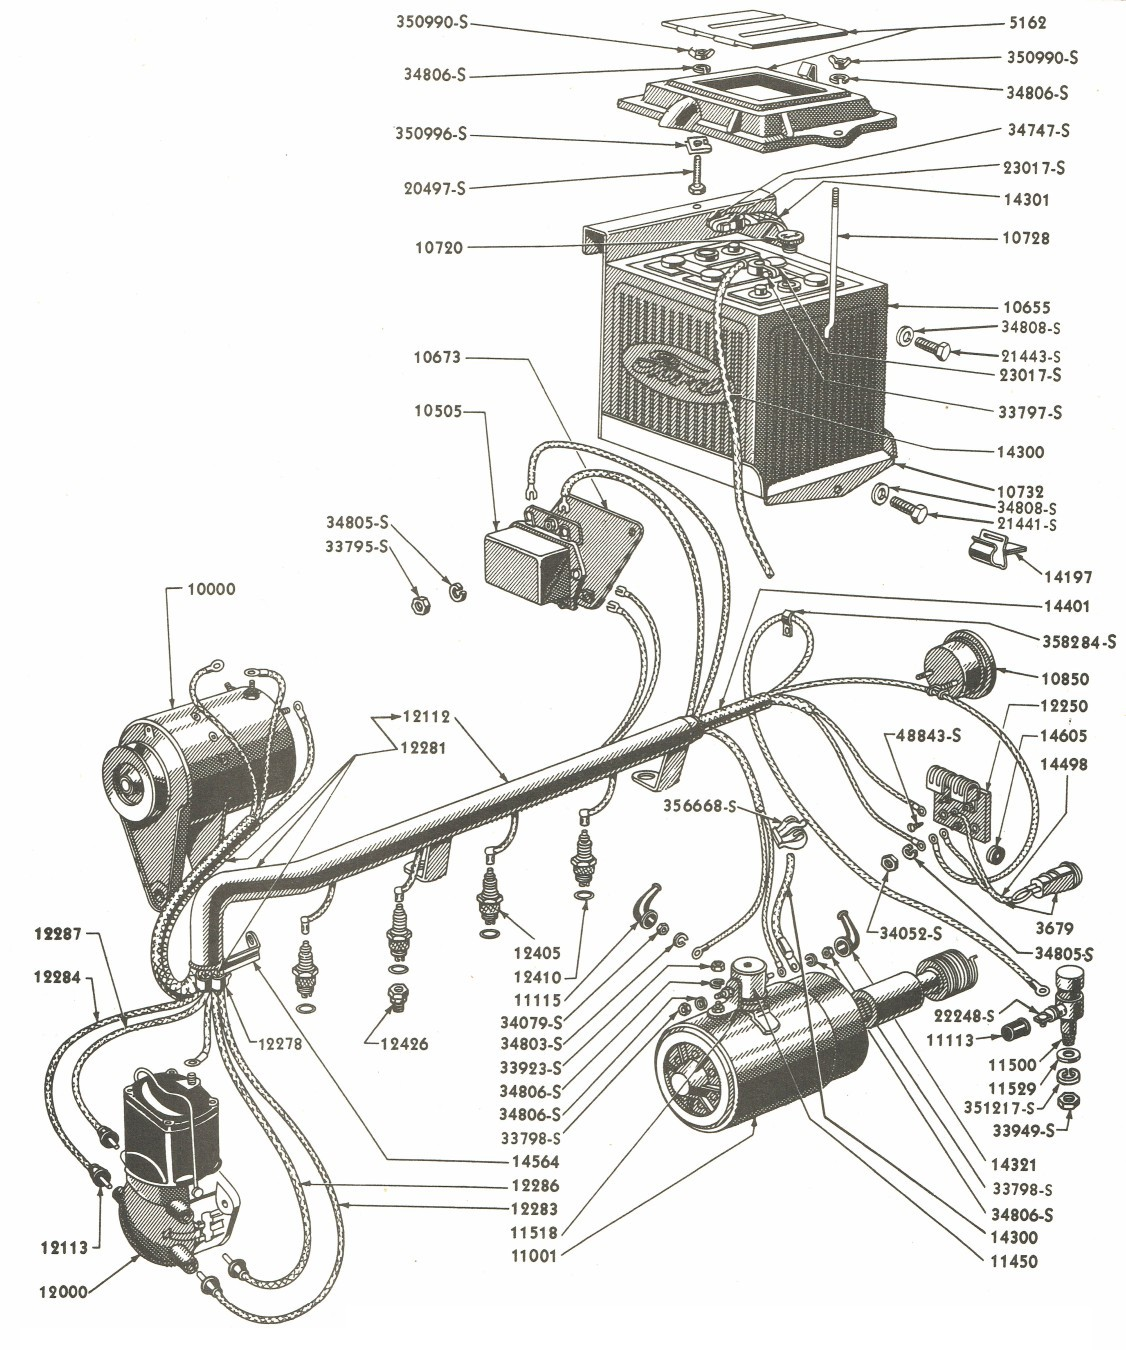 ford tractor wiring harness wiring diagram fascinatingwiring harness for 8n ford tractor wiring diagram centre ford 600 tractor wiring harness ford 8n